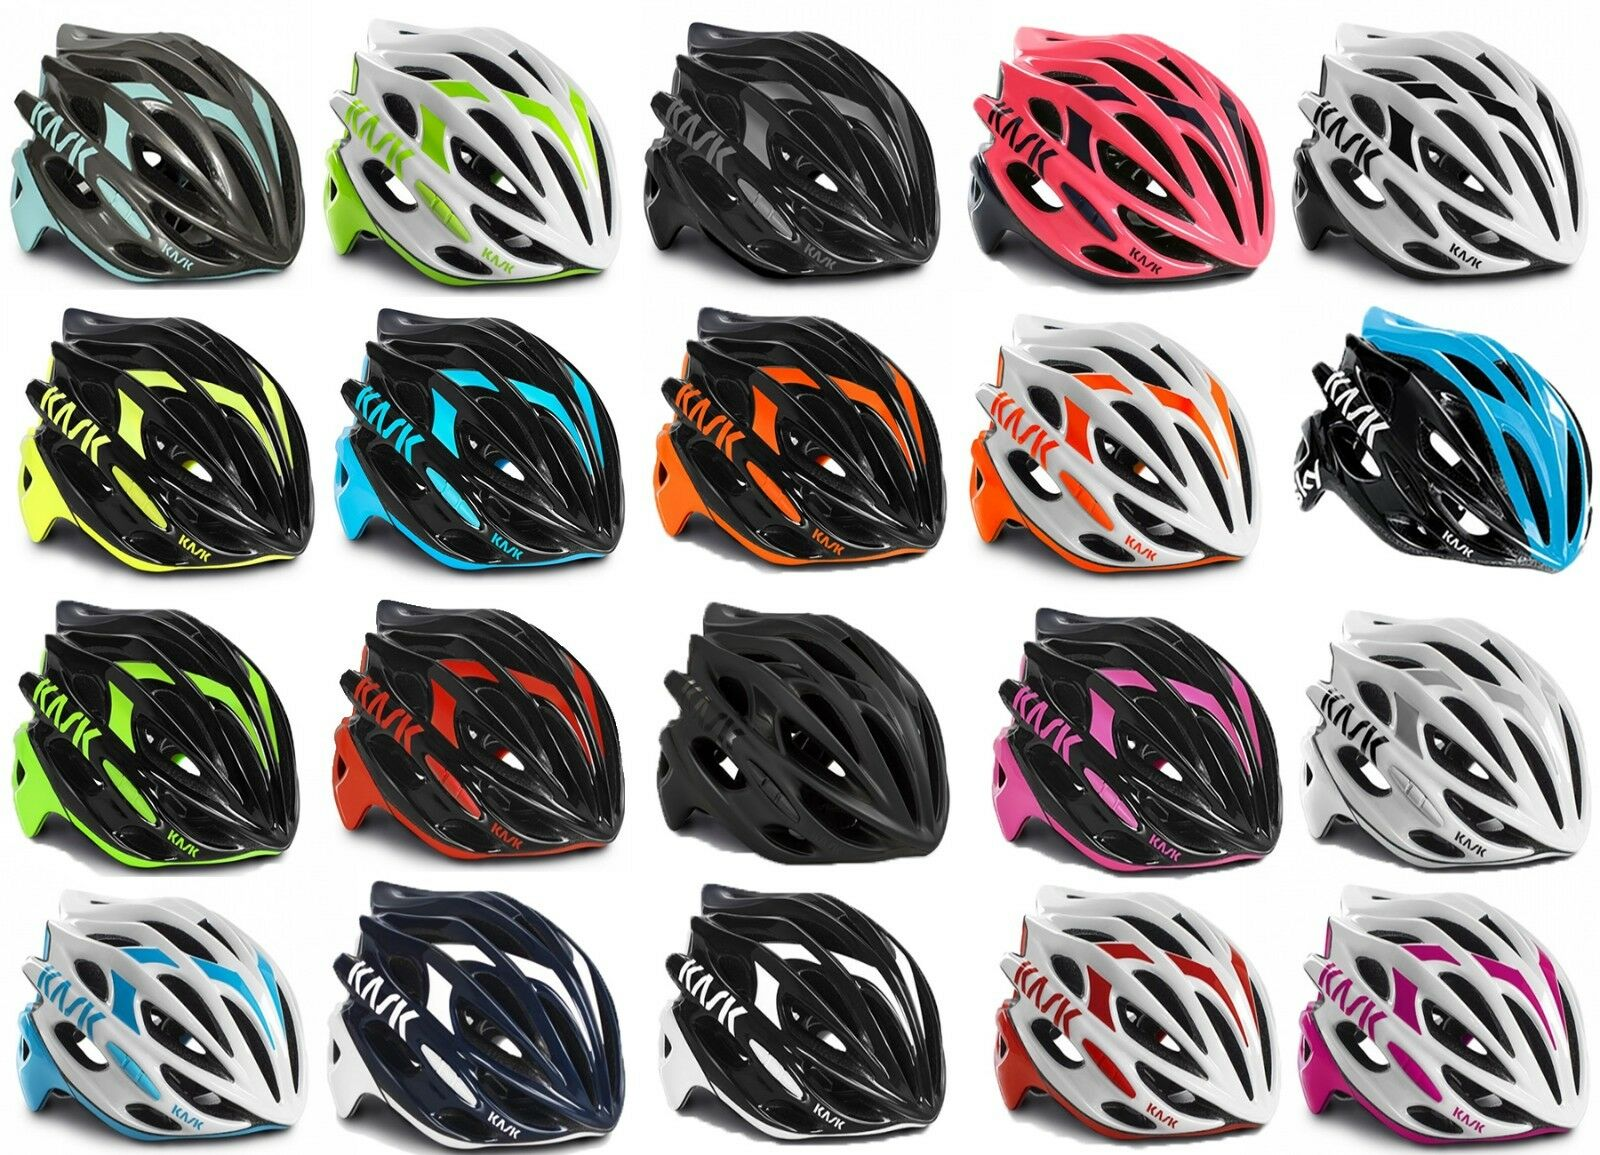 NEW KASK Mojito Helmet - Available in different sizes and colors